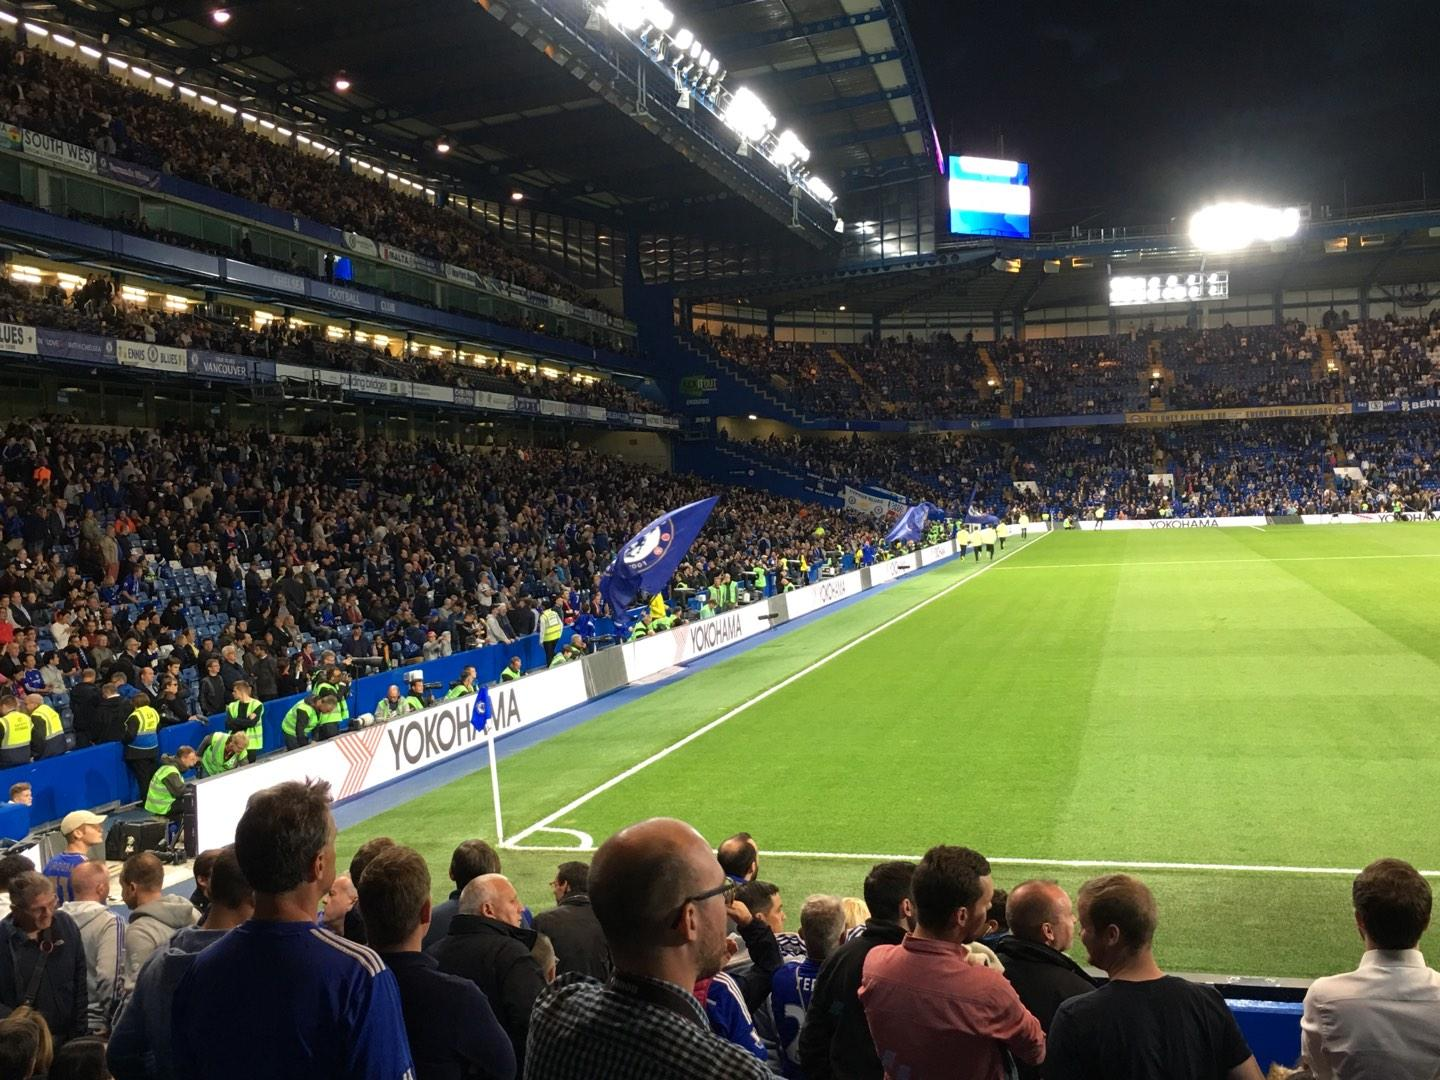 Stamford Bridge Secção Shed End Lower 6 Fila 13 Lugar 164